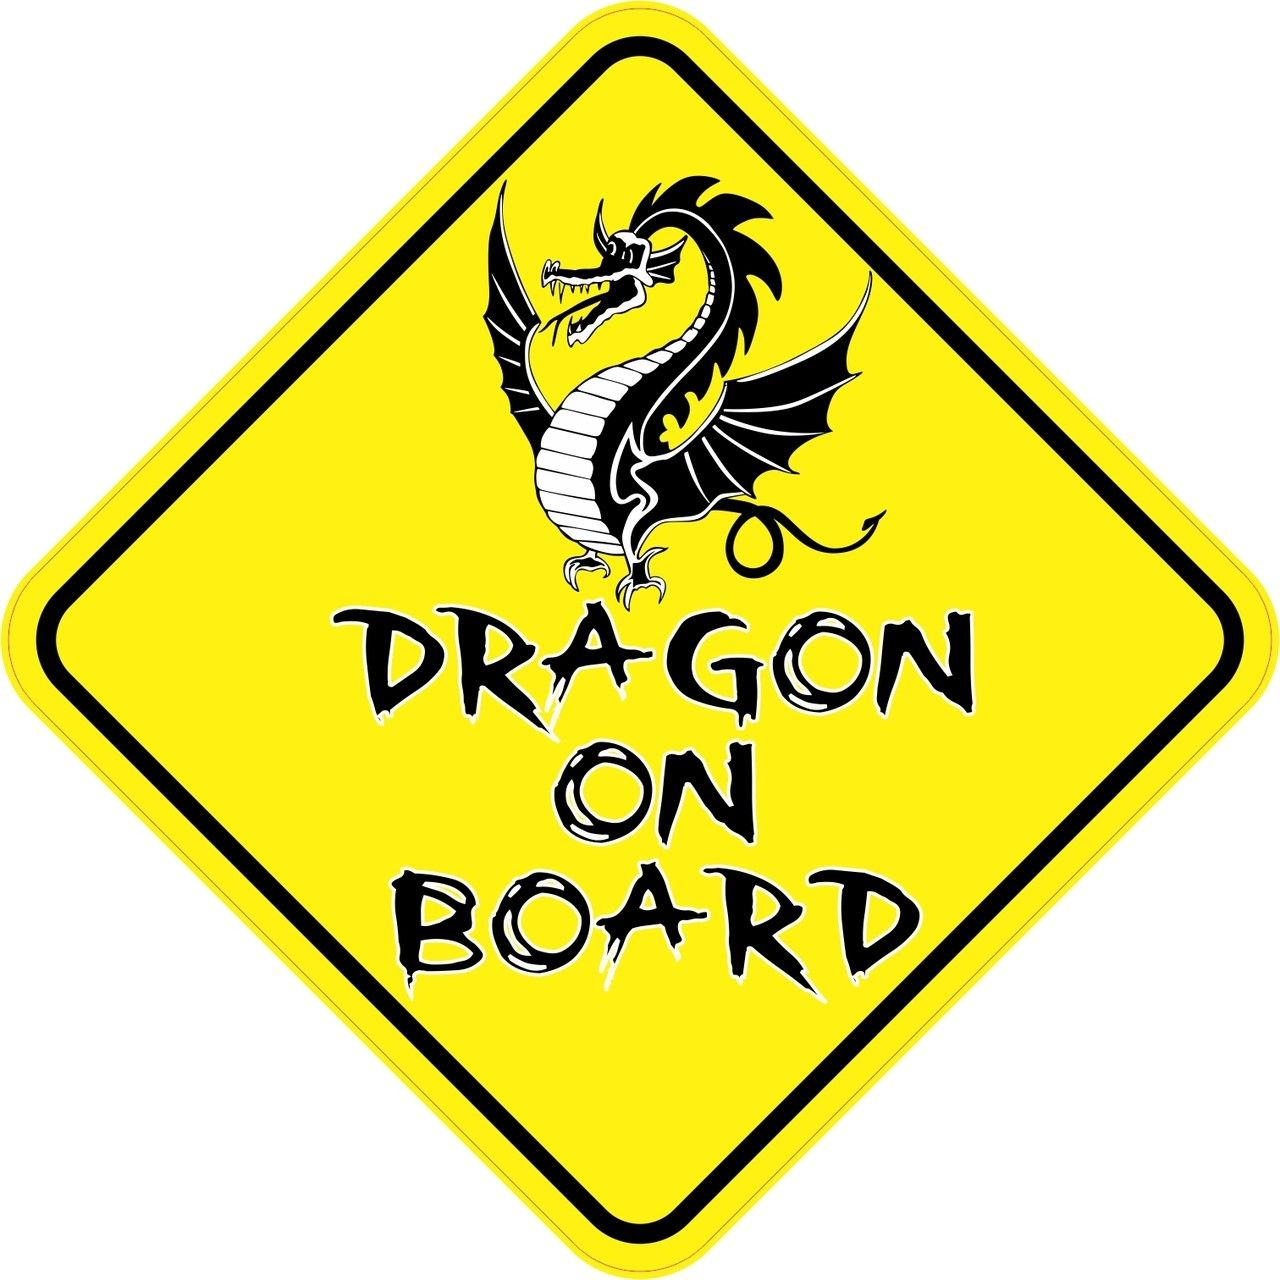 5in x 5in Dragon On Board Sticker (With images) Bumper